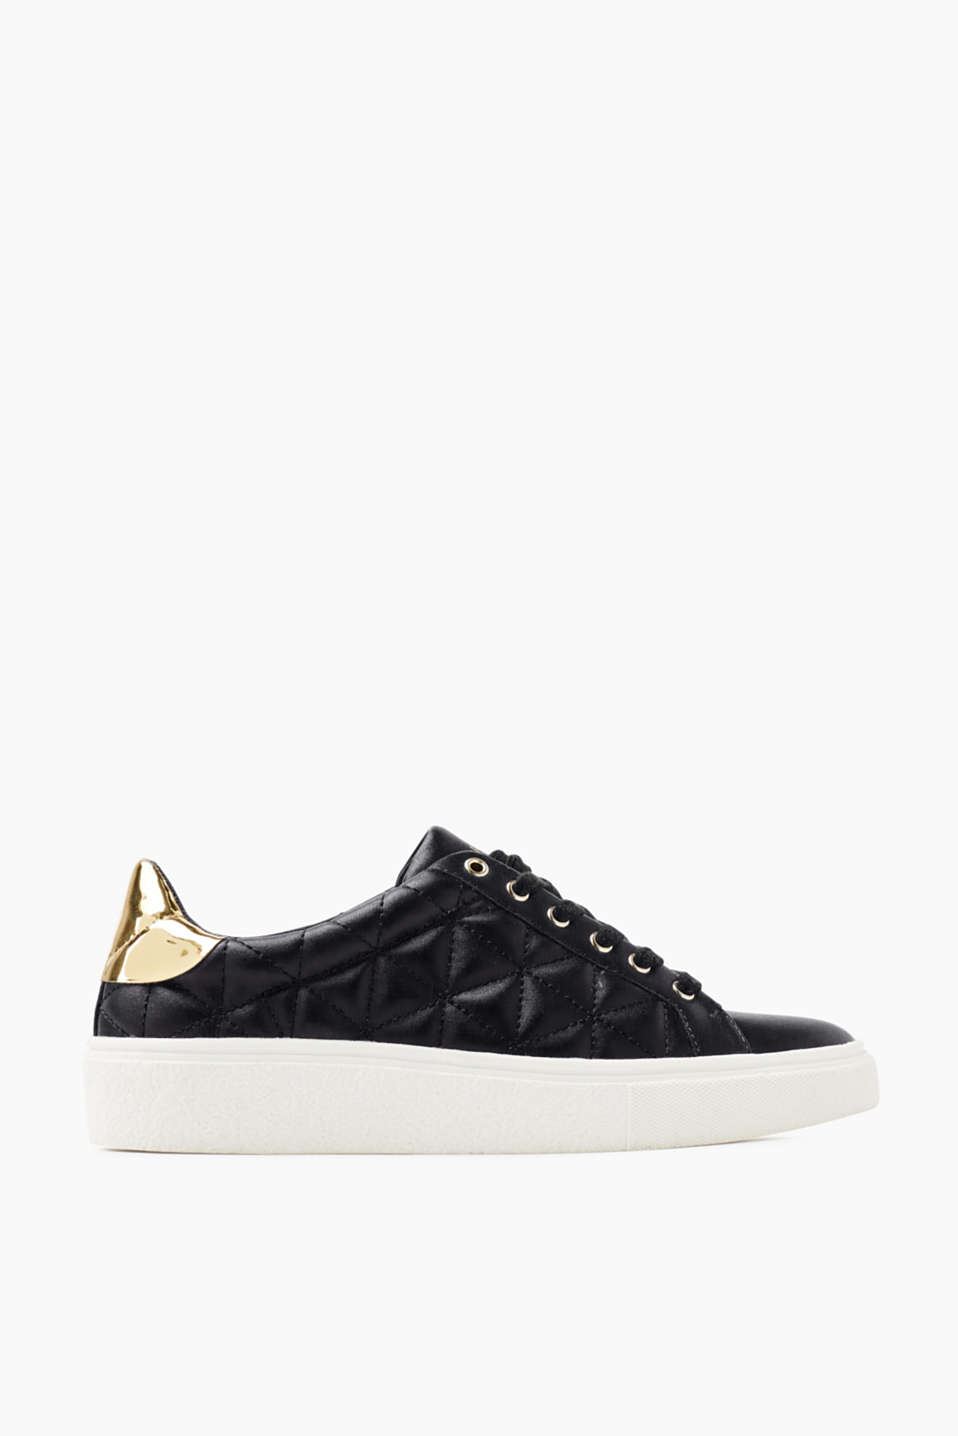 We love trainers! These trainers are defined by their distinctive diamond quilting and metallic details